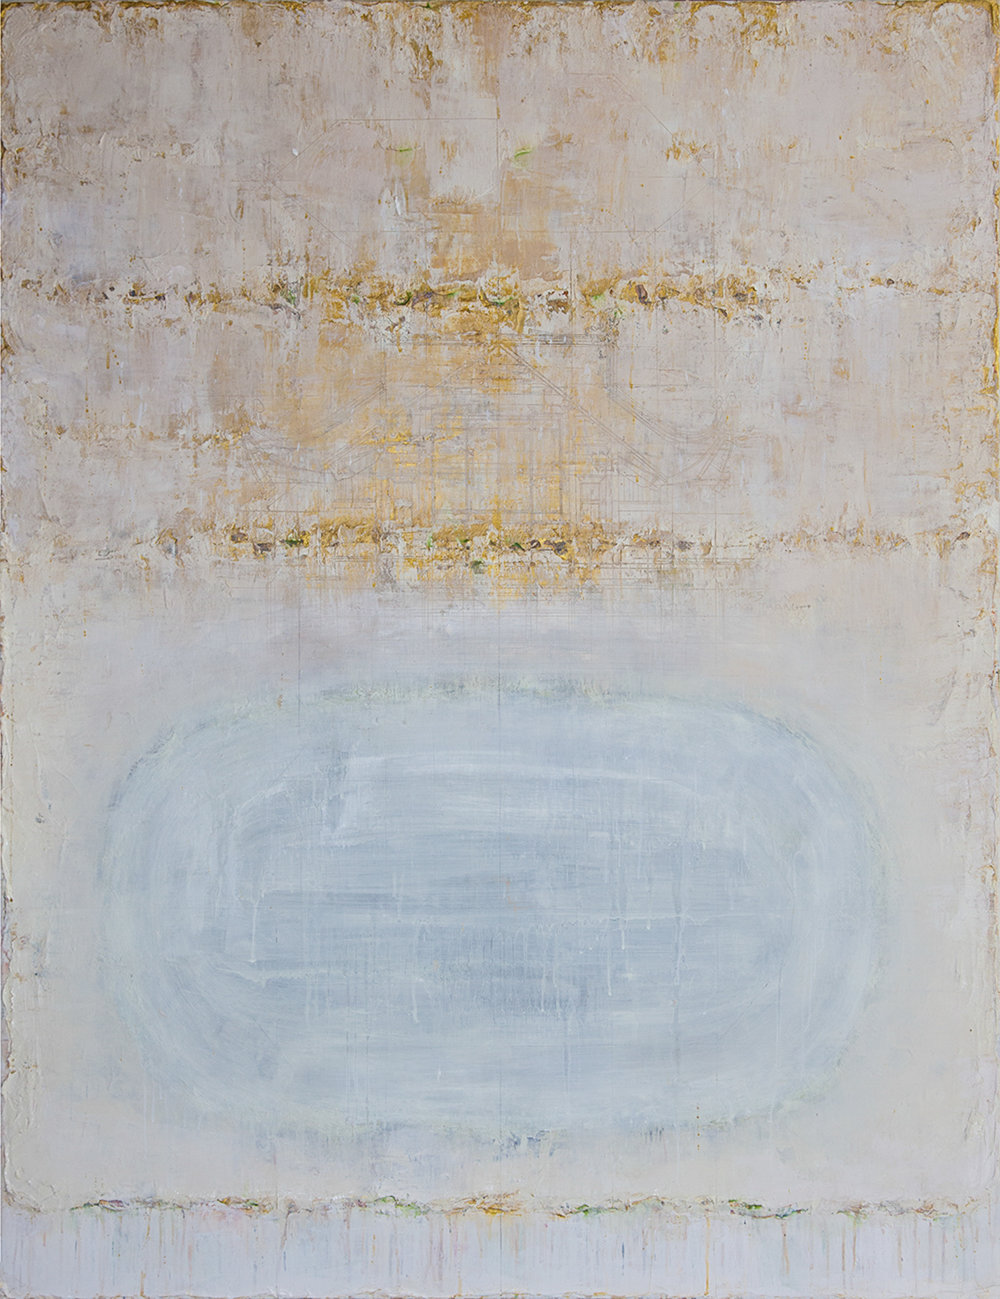 Golden Light #4, 2015, Oil, Acrylic and Charcoal on Canvas, 150 x 120 cm, HA Manh Thang